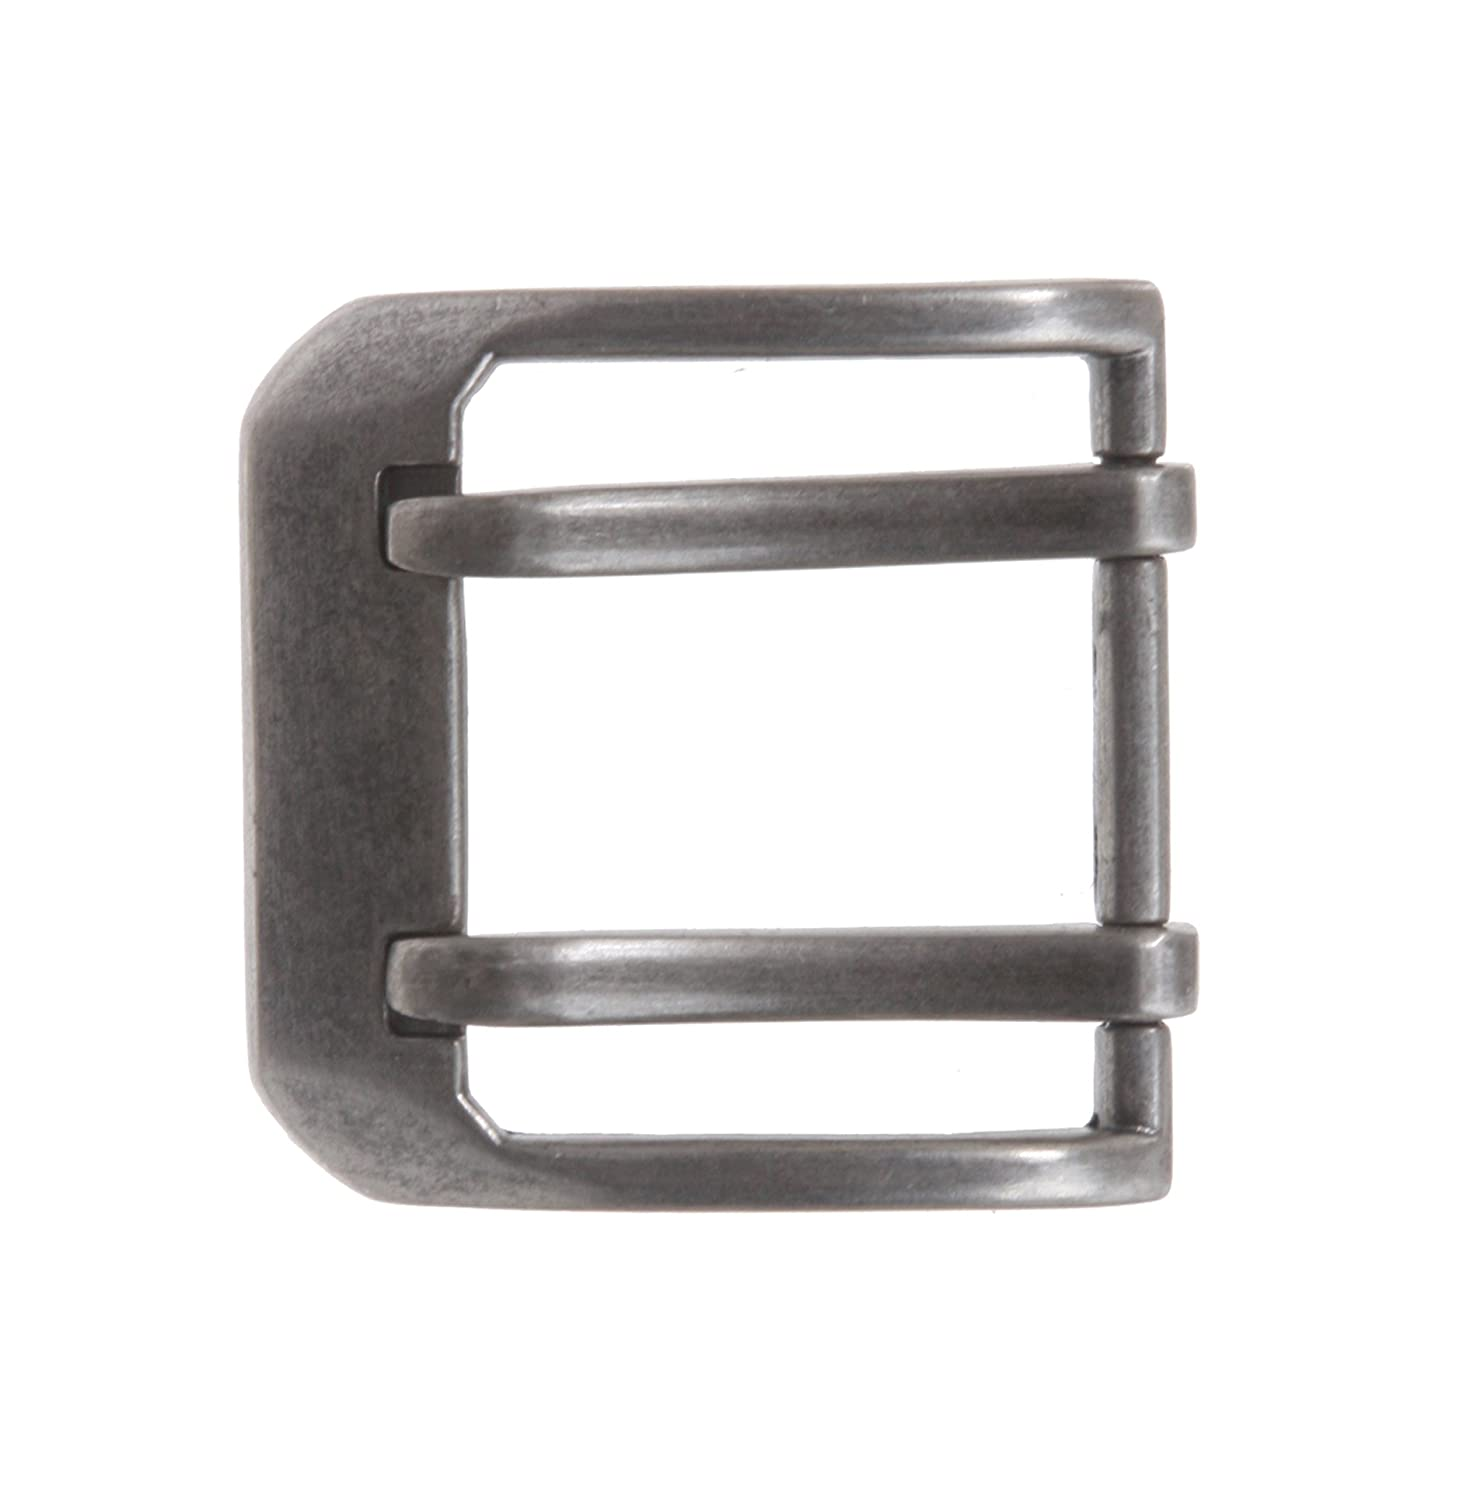 1 1/2 (38 mm) Double Prong Square Belt Buckle, Antique Silver Beltiscool 500250:A00E